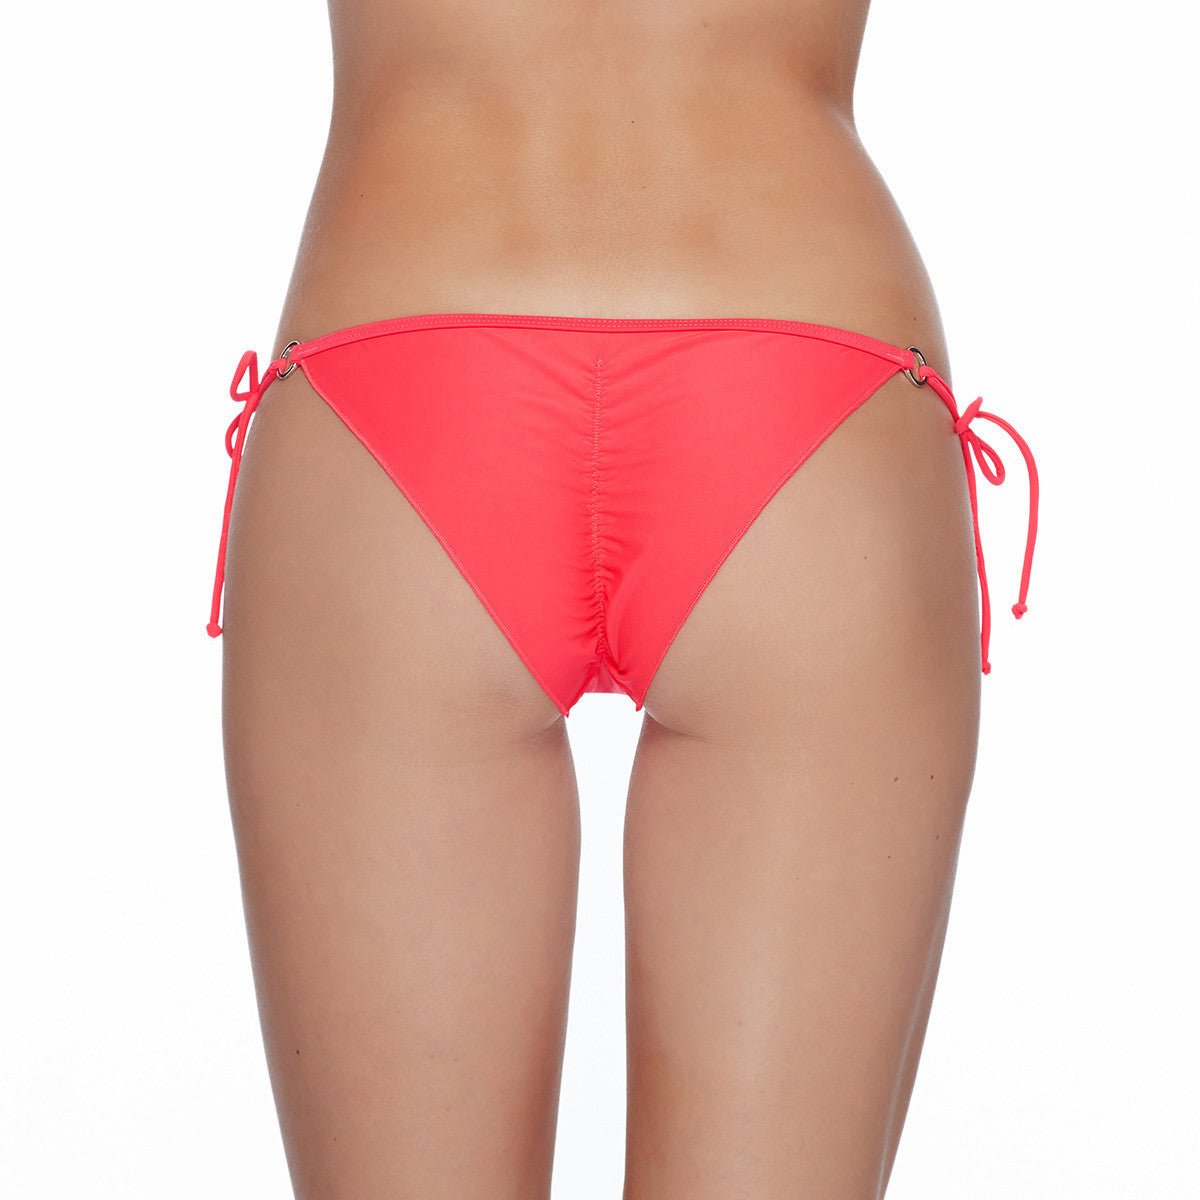 Body Glove Smoothies Brasilia bikini bottoms Side tie bikini bottoms Adjustable side ties with ring hardware Center back seam with ruching Fully lined Metal Body Glove heart logo badge at front hip Nylon/Spandex Hand wash cold Top and bottom sold separately pink